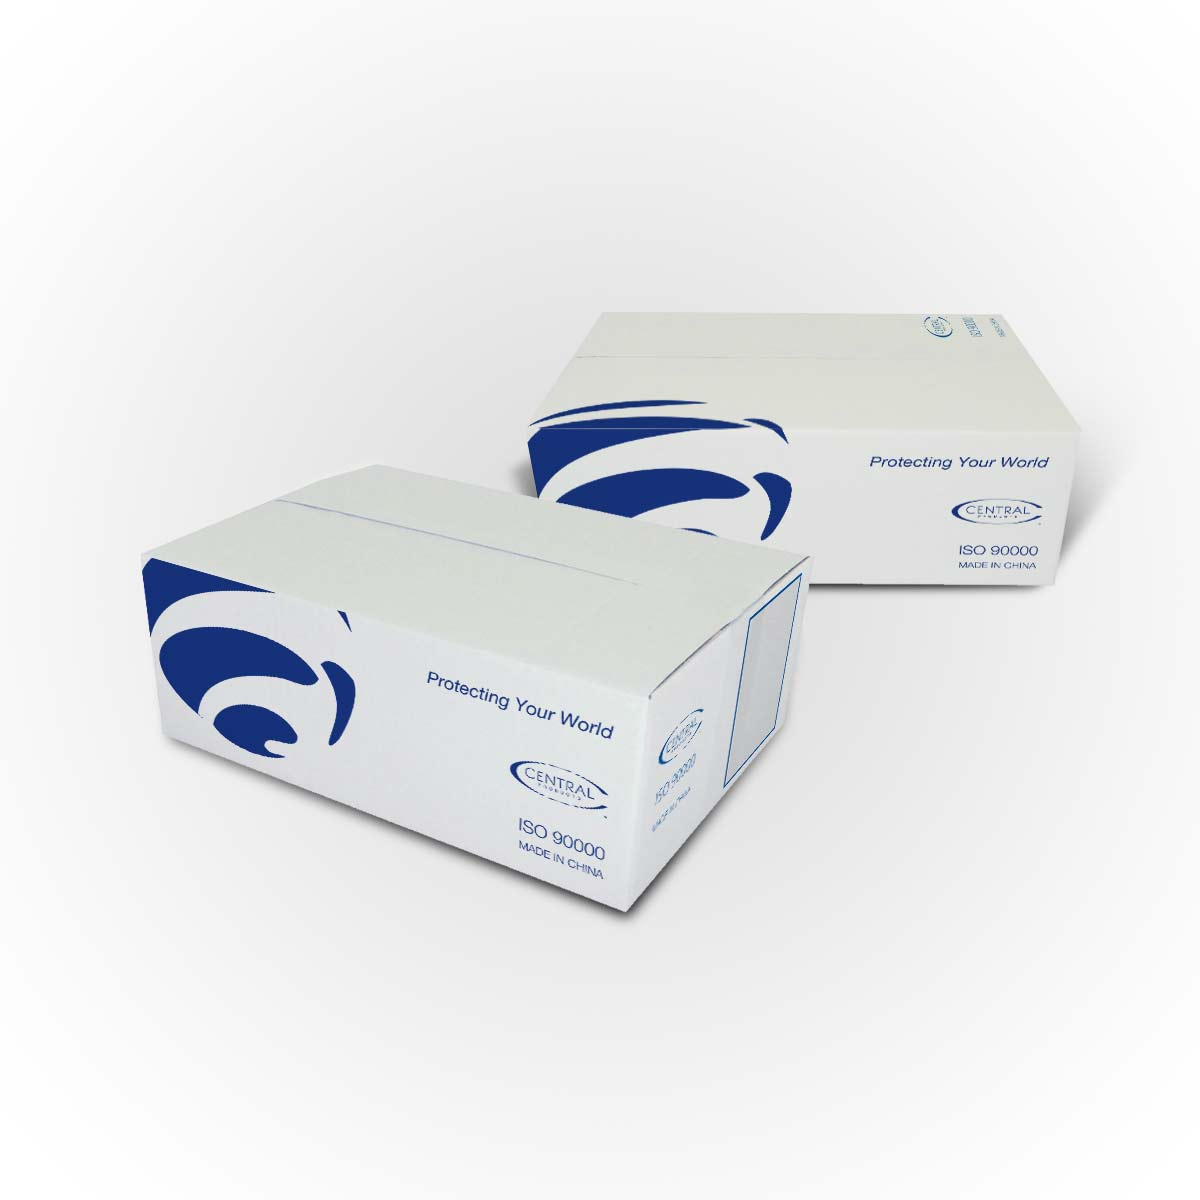 Central_Products_boxes_1200px